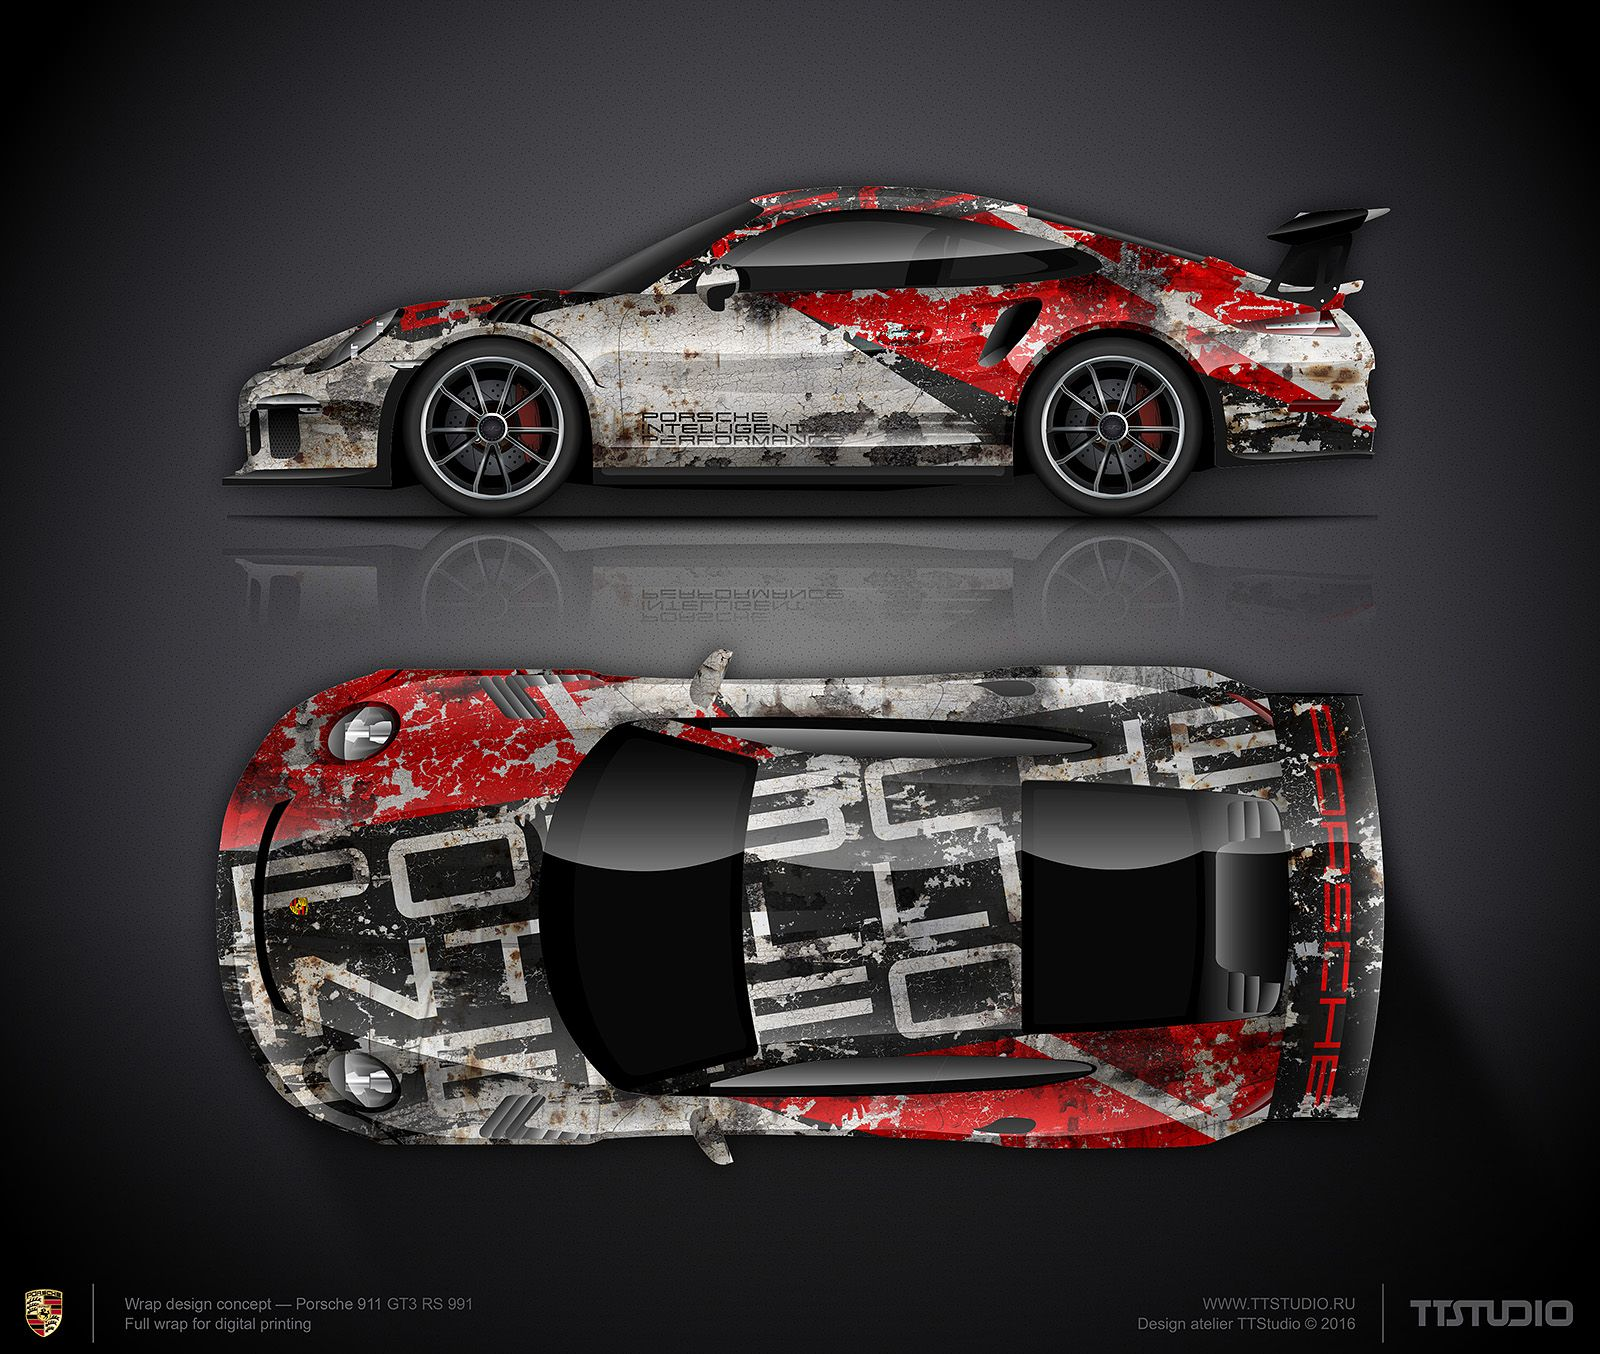 Car sticker design pinterest - Find This Pin And More On Car Wrap Design